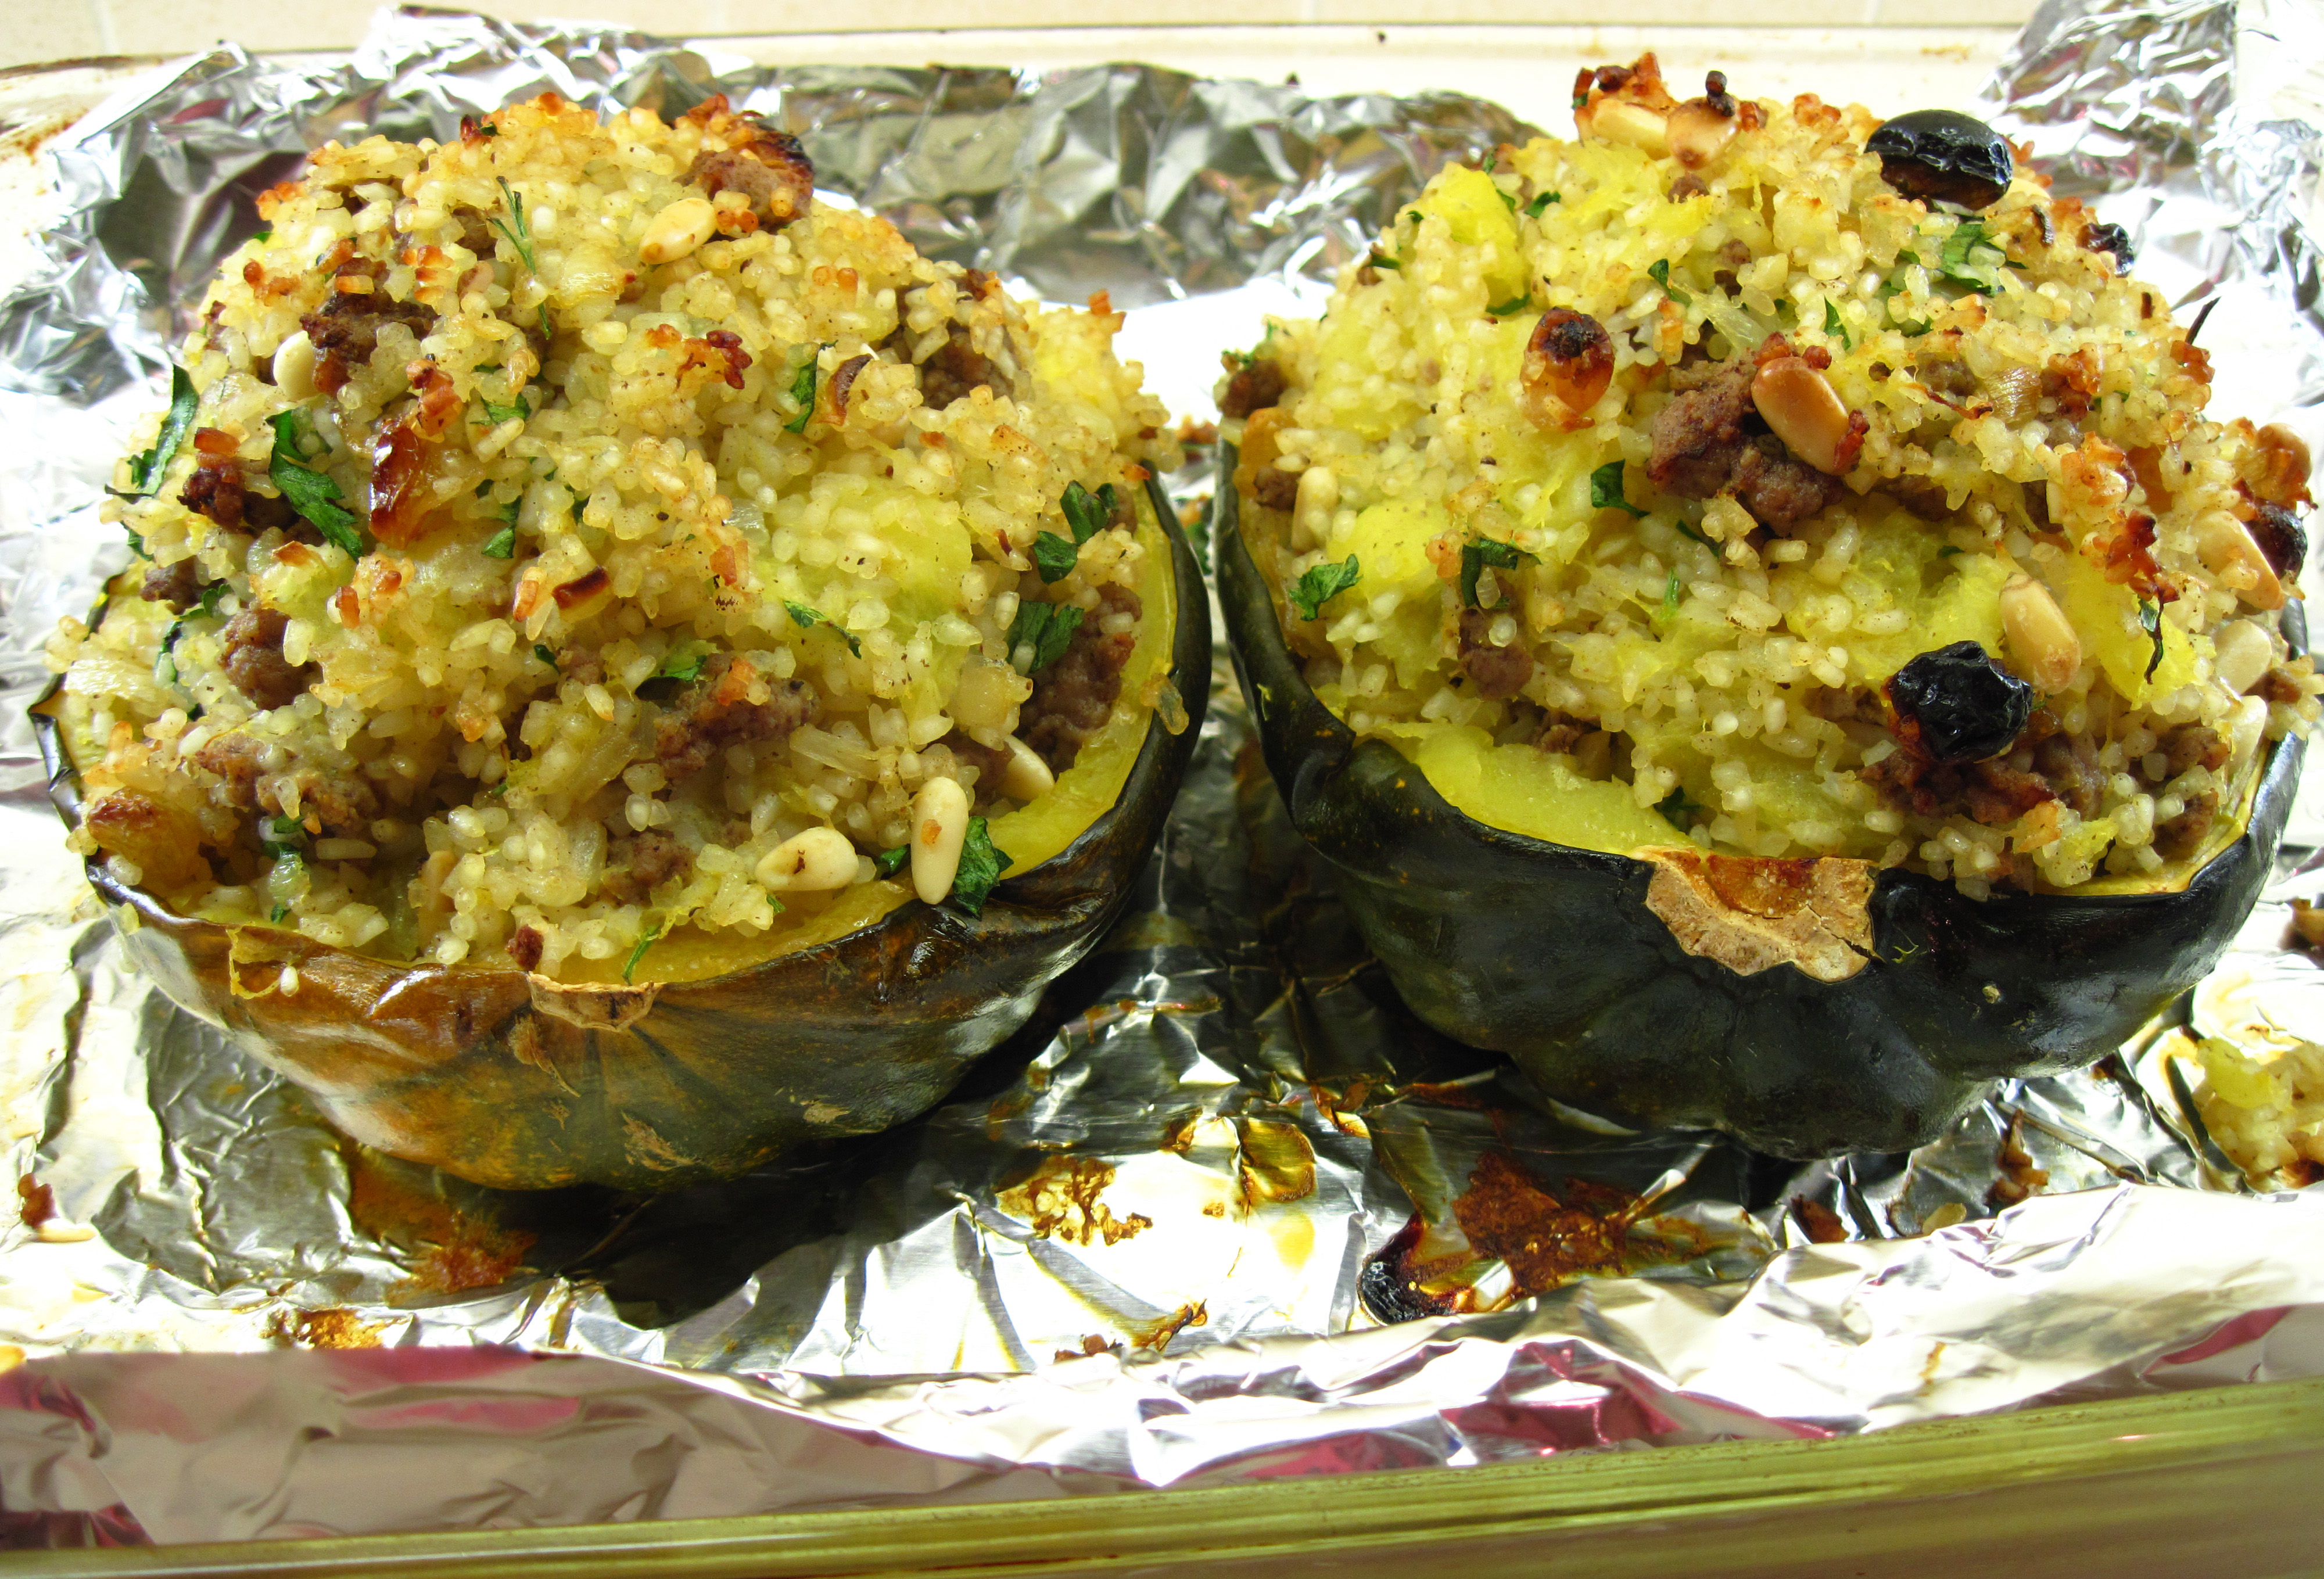 Moroccan-Style Stuffed Acorn Squashes | In the kitchen with Kath